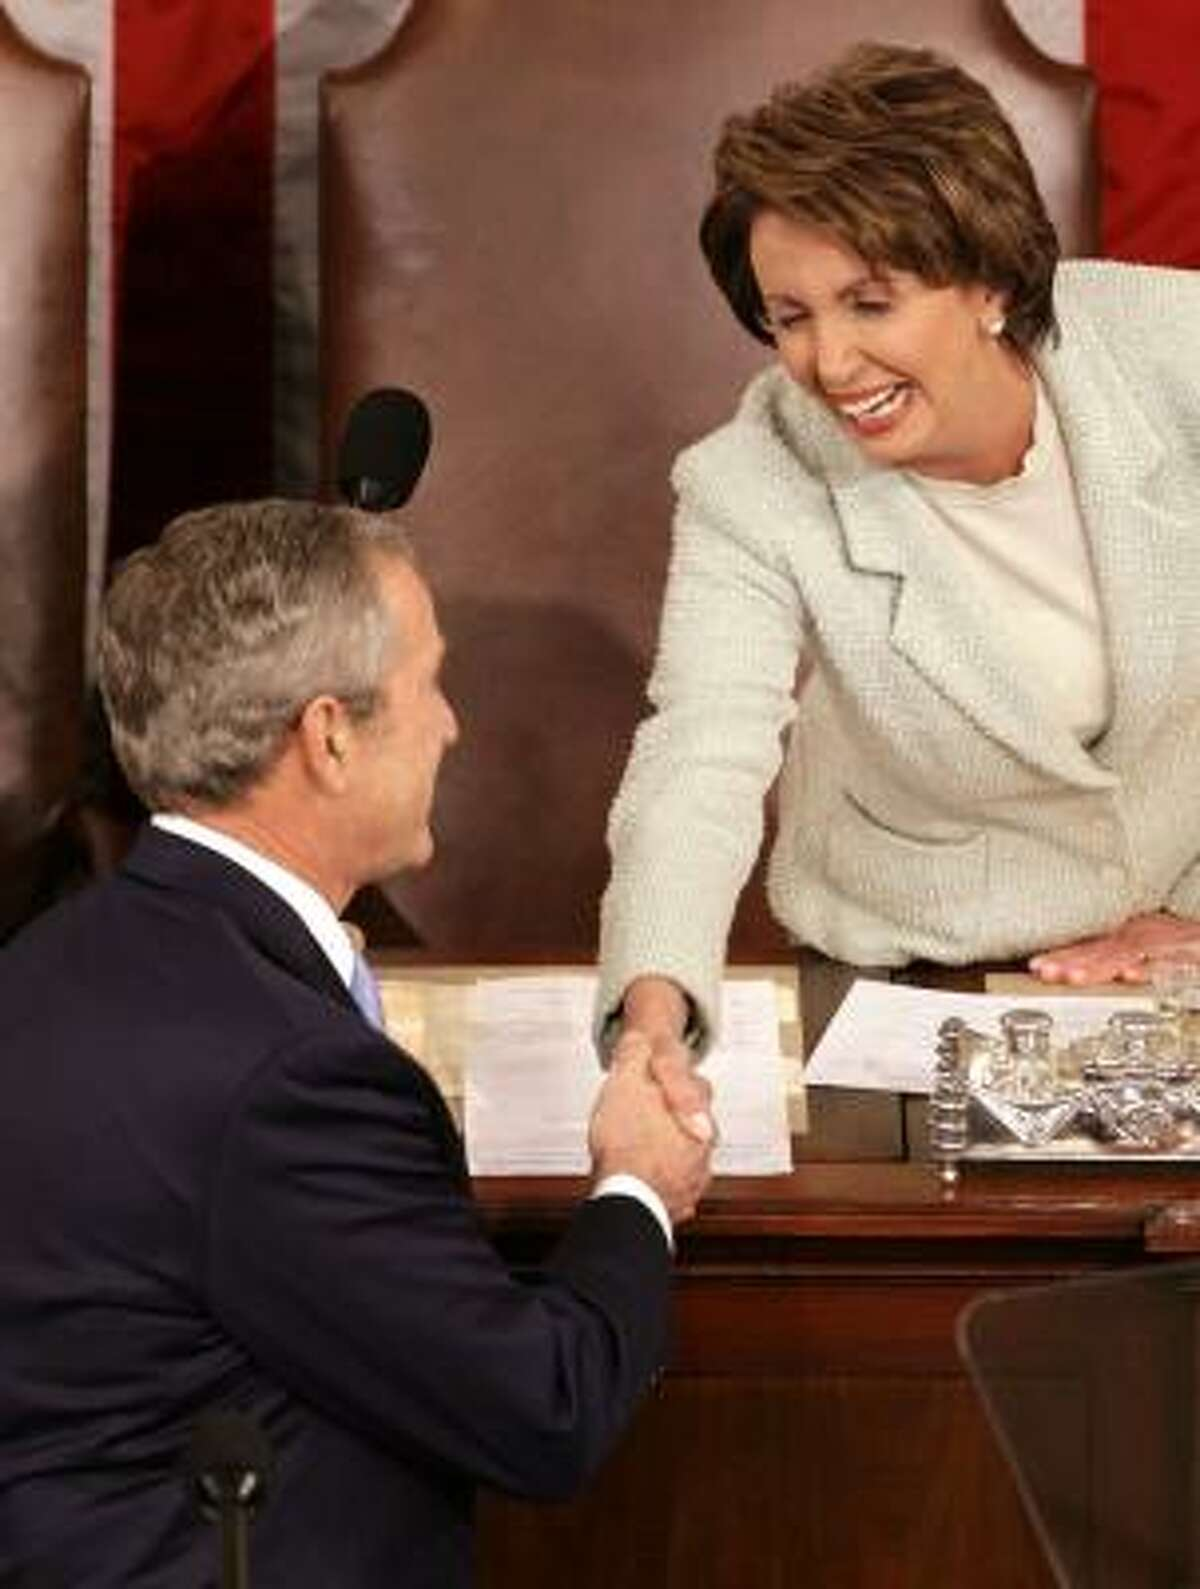 President Bush began with a nod to Nancy Pelosi's history-making role.